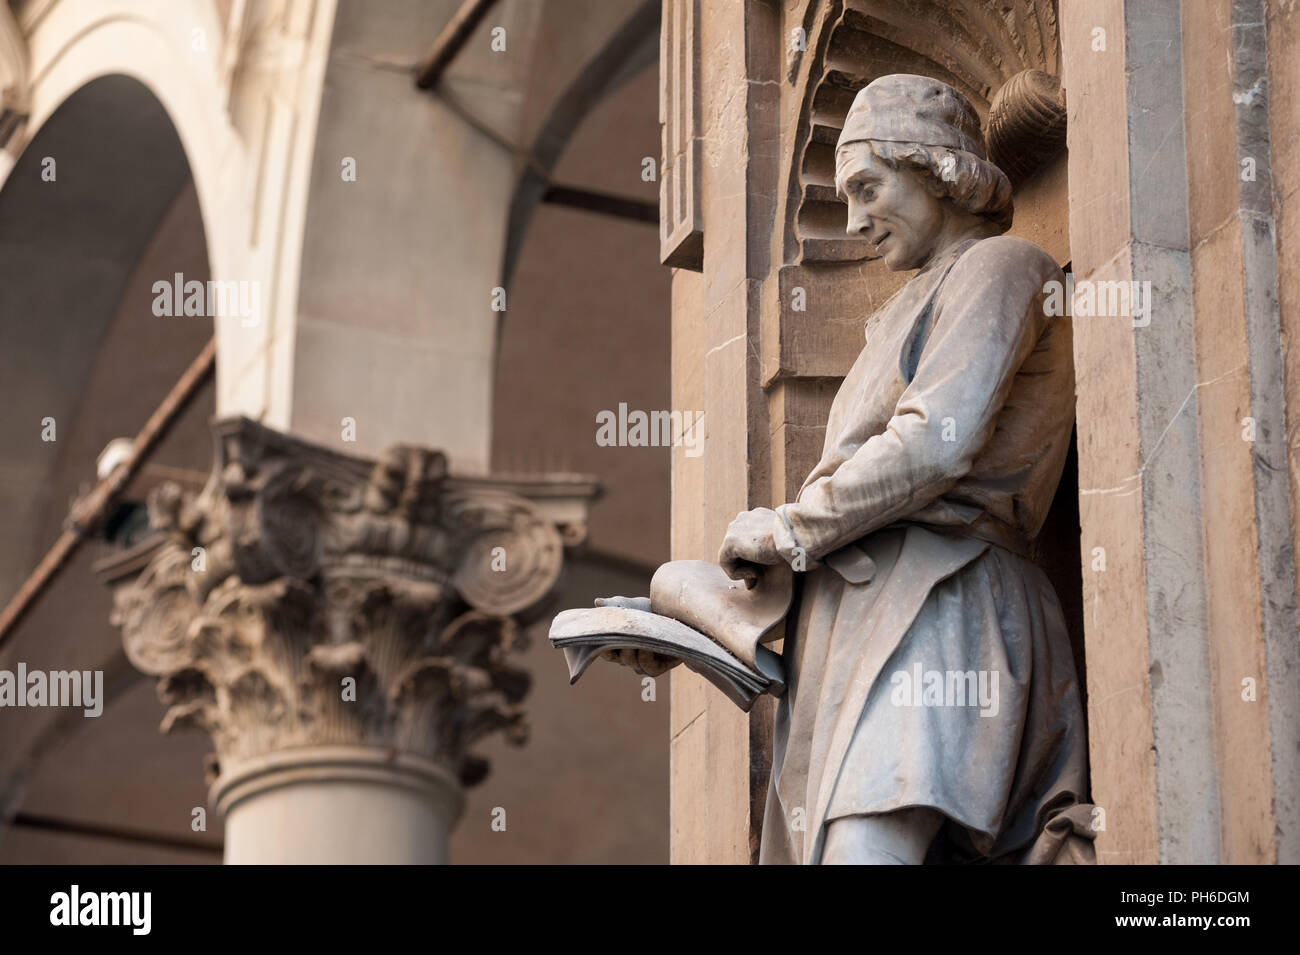 Bernardo Cennini scans printing proofs in a niche overlooking the Mercato Nuovo, Florence, Italy - Stock Image